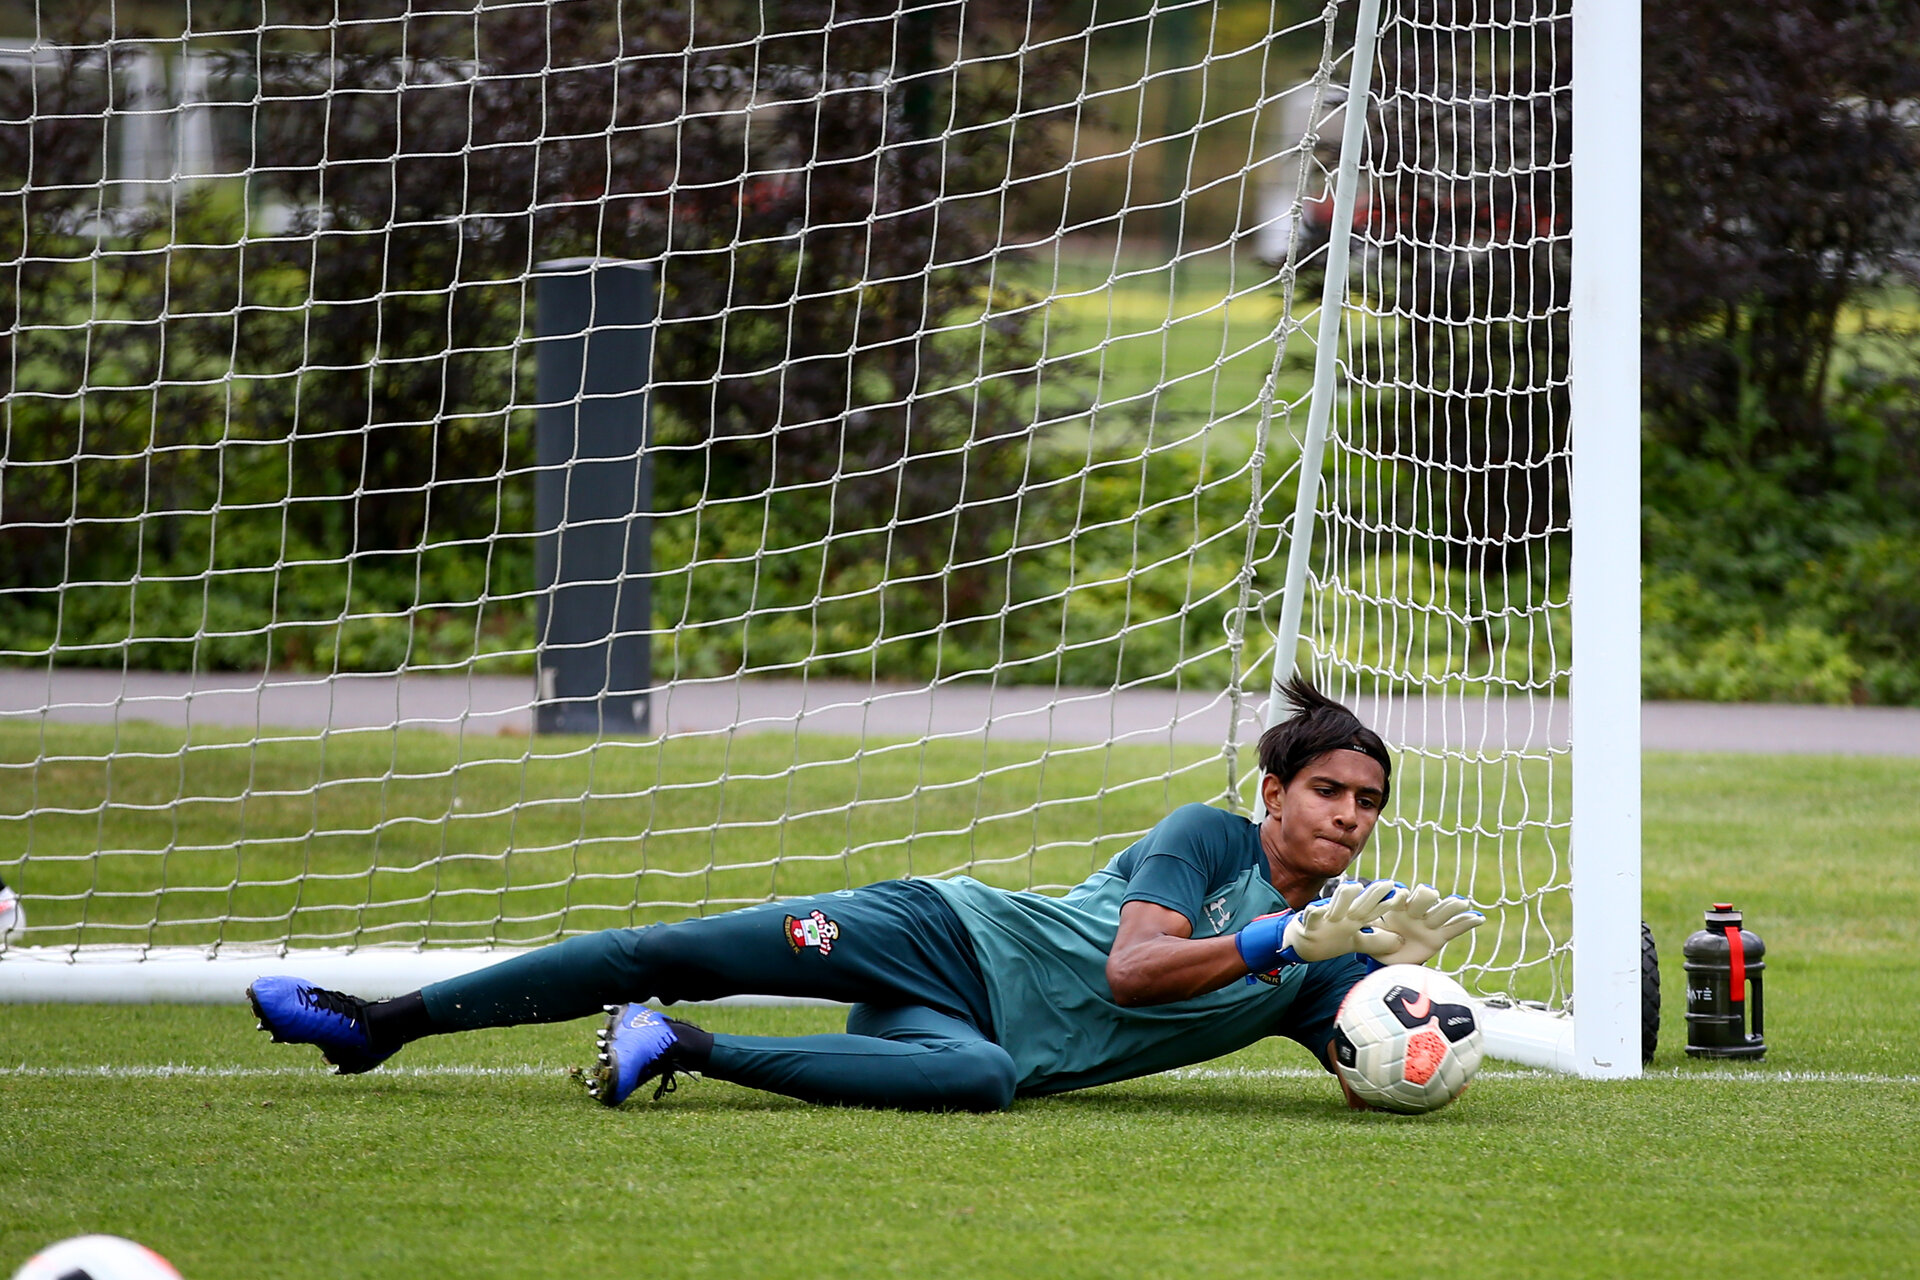 SOUTHAMPTON, ENGLAND - August 13: Gustav Lillenberg during a Southampton U18 training session at Staplewood Training ground on August 13, 2020 in Southampton, England. (Photo by Isabelle Field/Southampton FC via Getty Images)